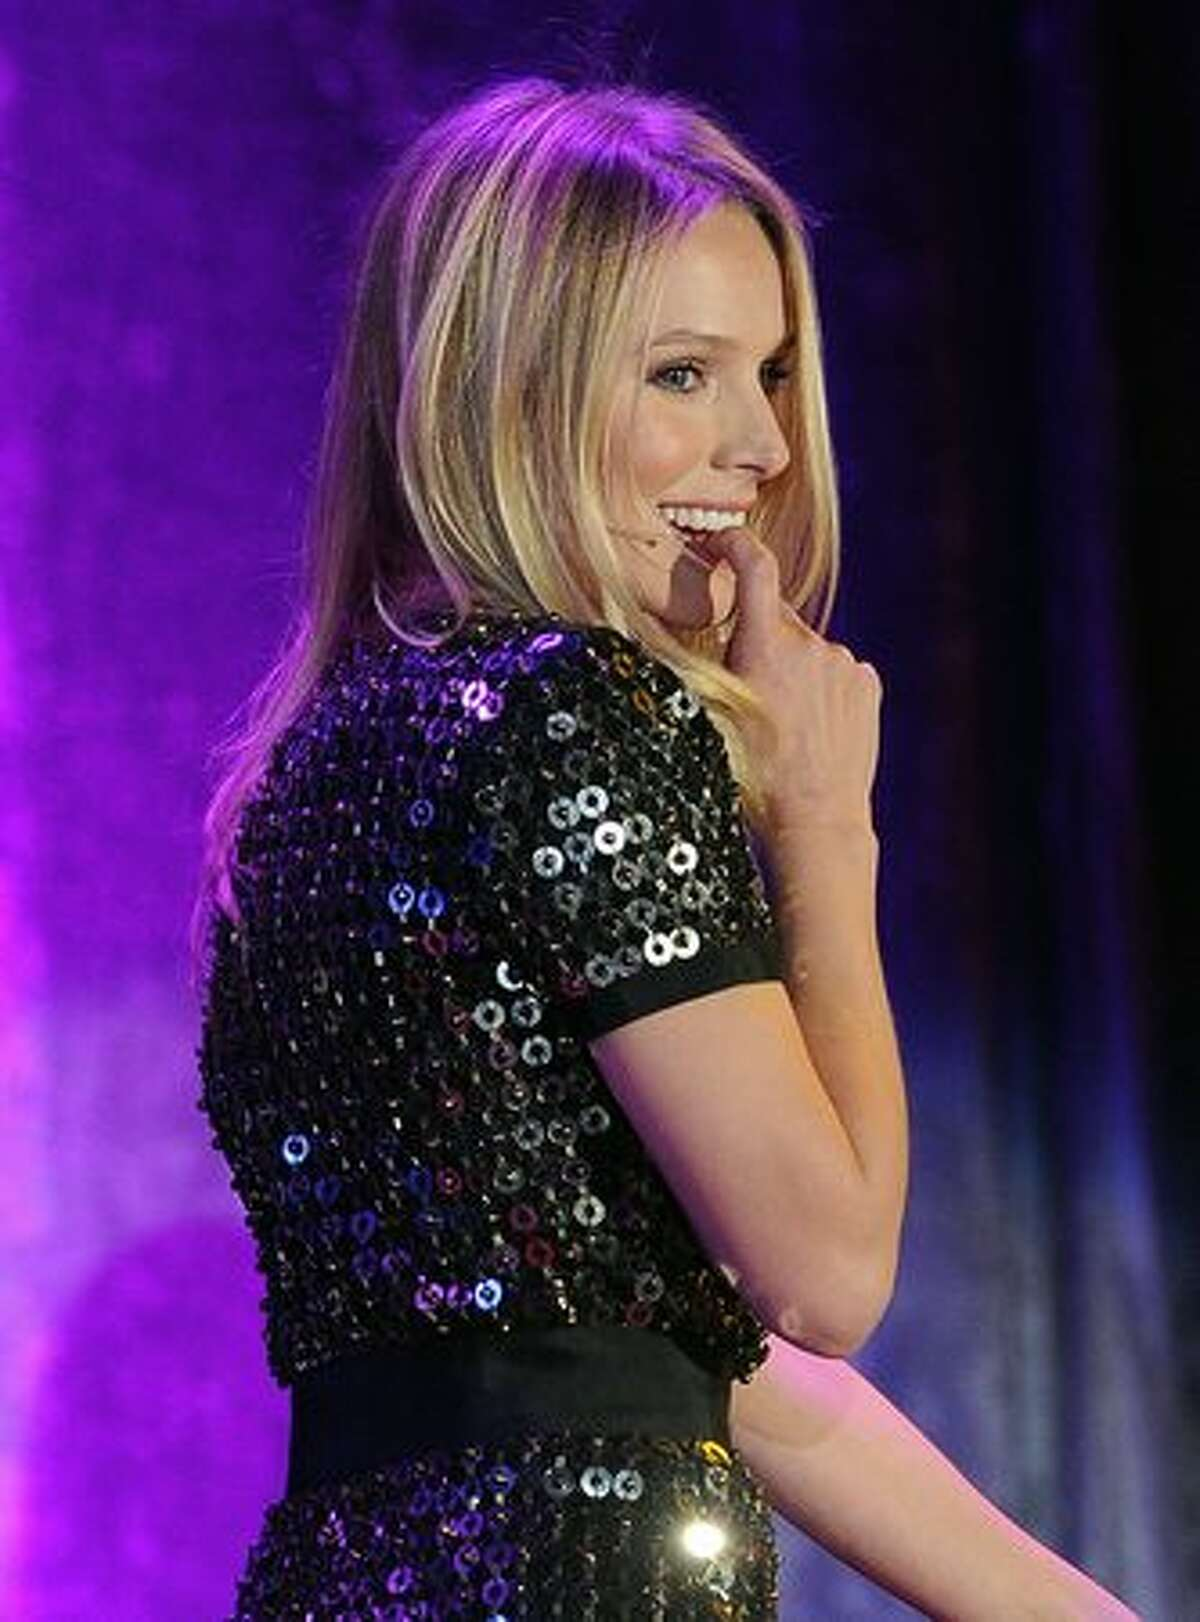 Actress Kristen Bell performs onstage during the 19th annual